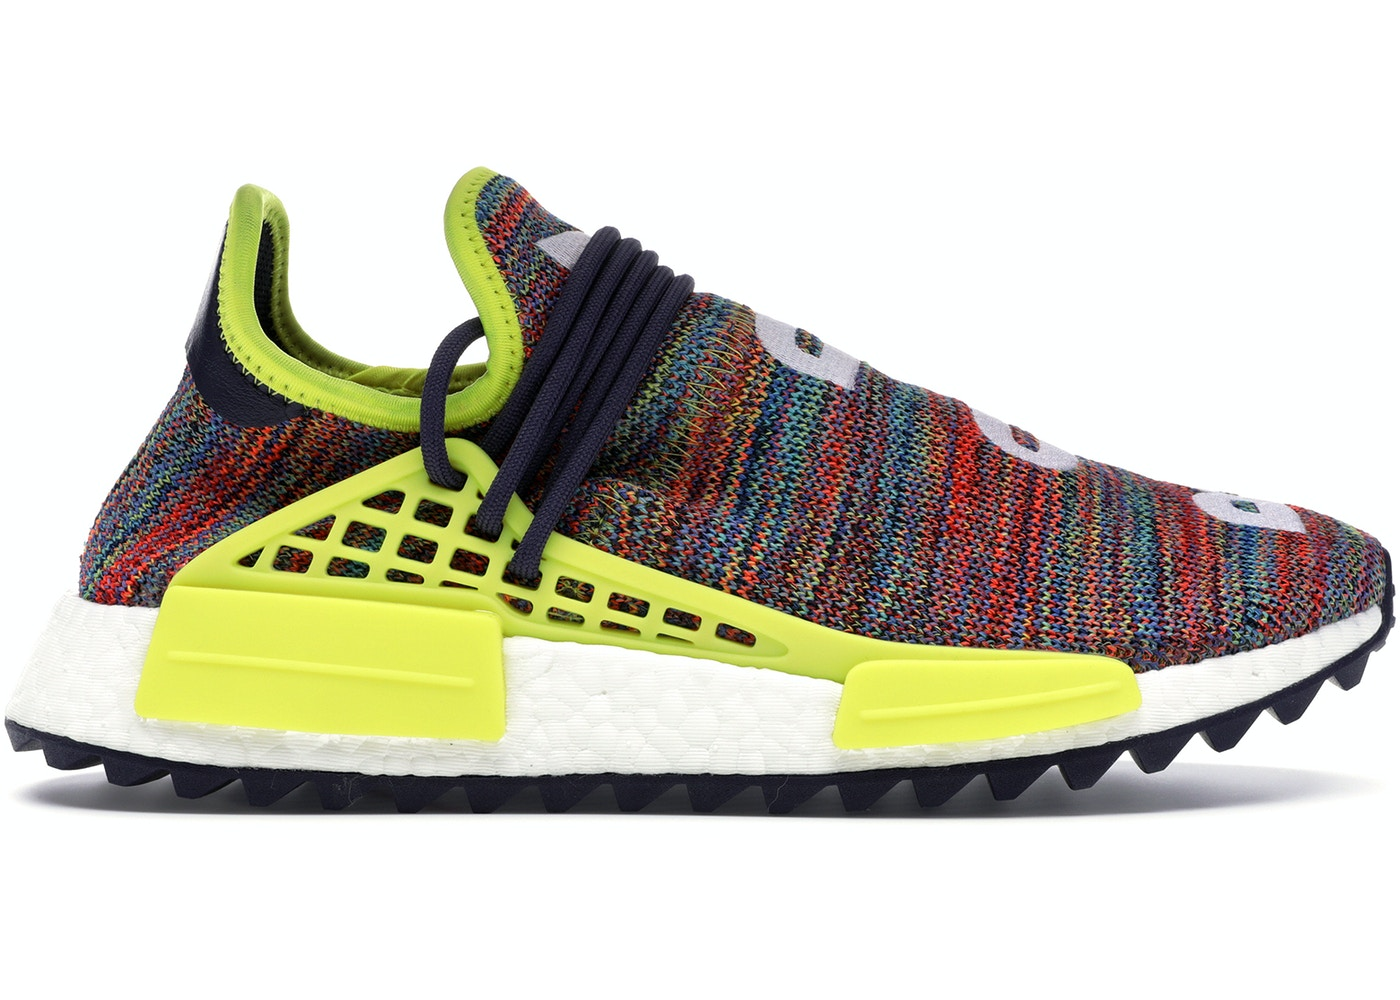 89e4a24a45a84 adidas Human Race NMD Pharrell Multi-Color - AC7360